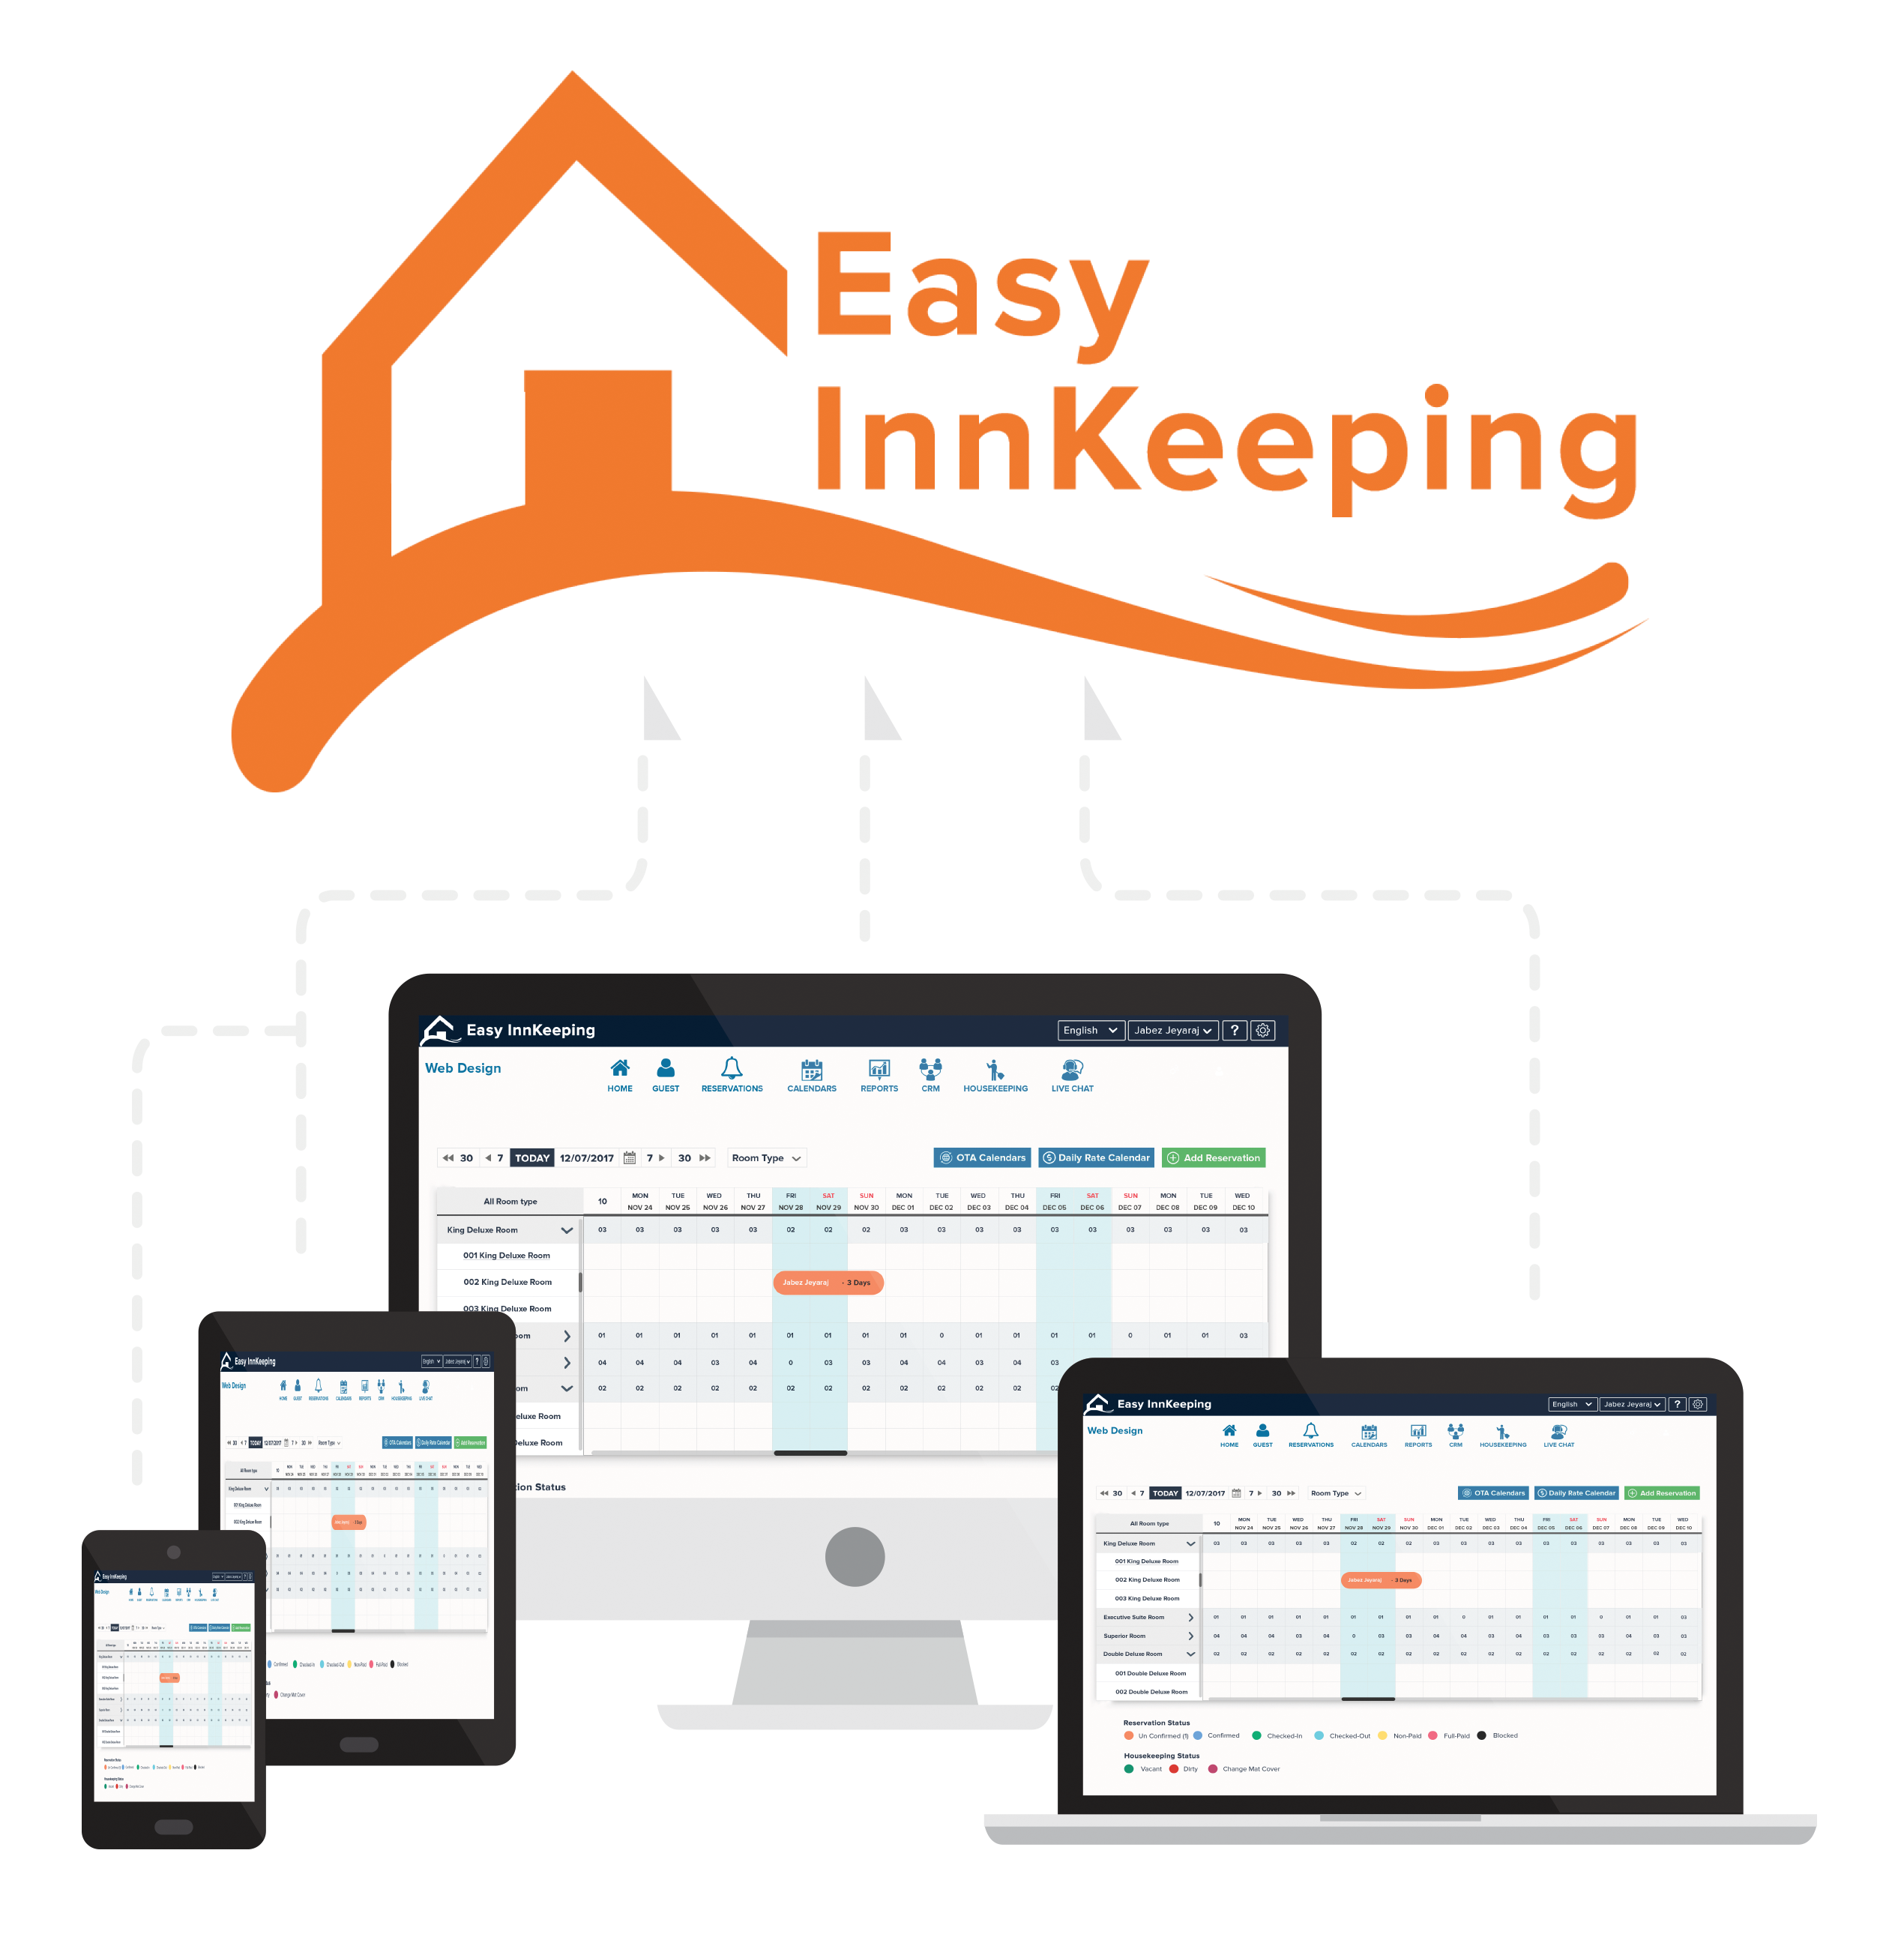 hotel-channel-manager-responsive-user-interface-easyInnkeeping